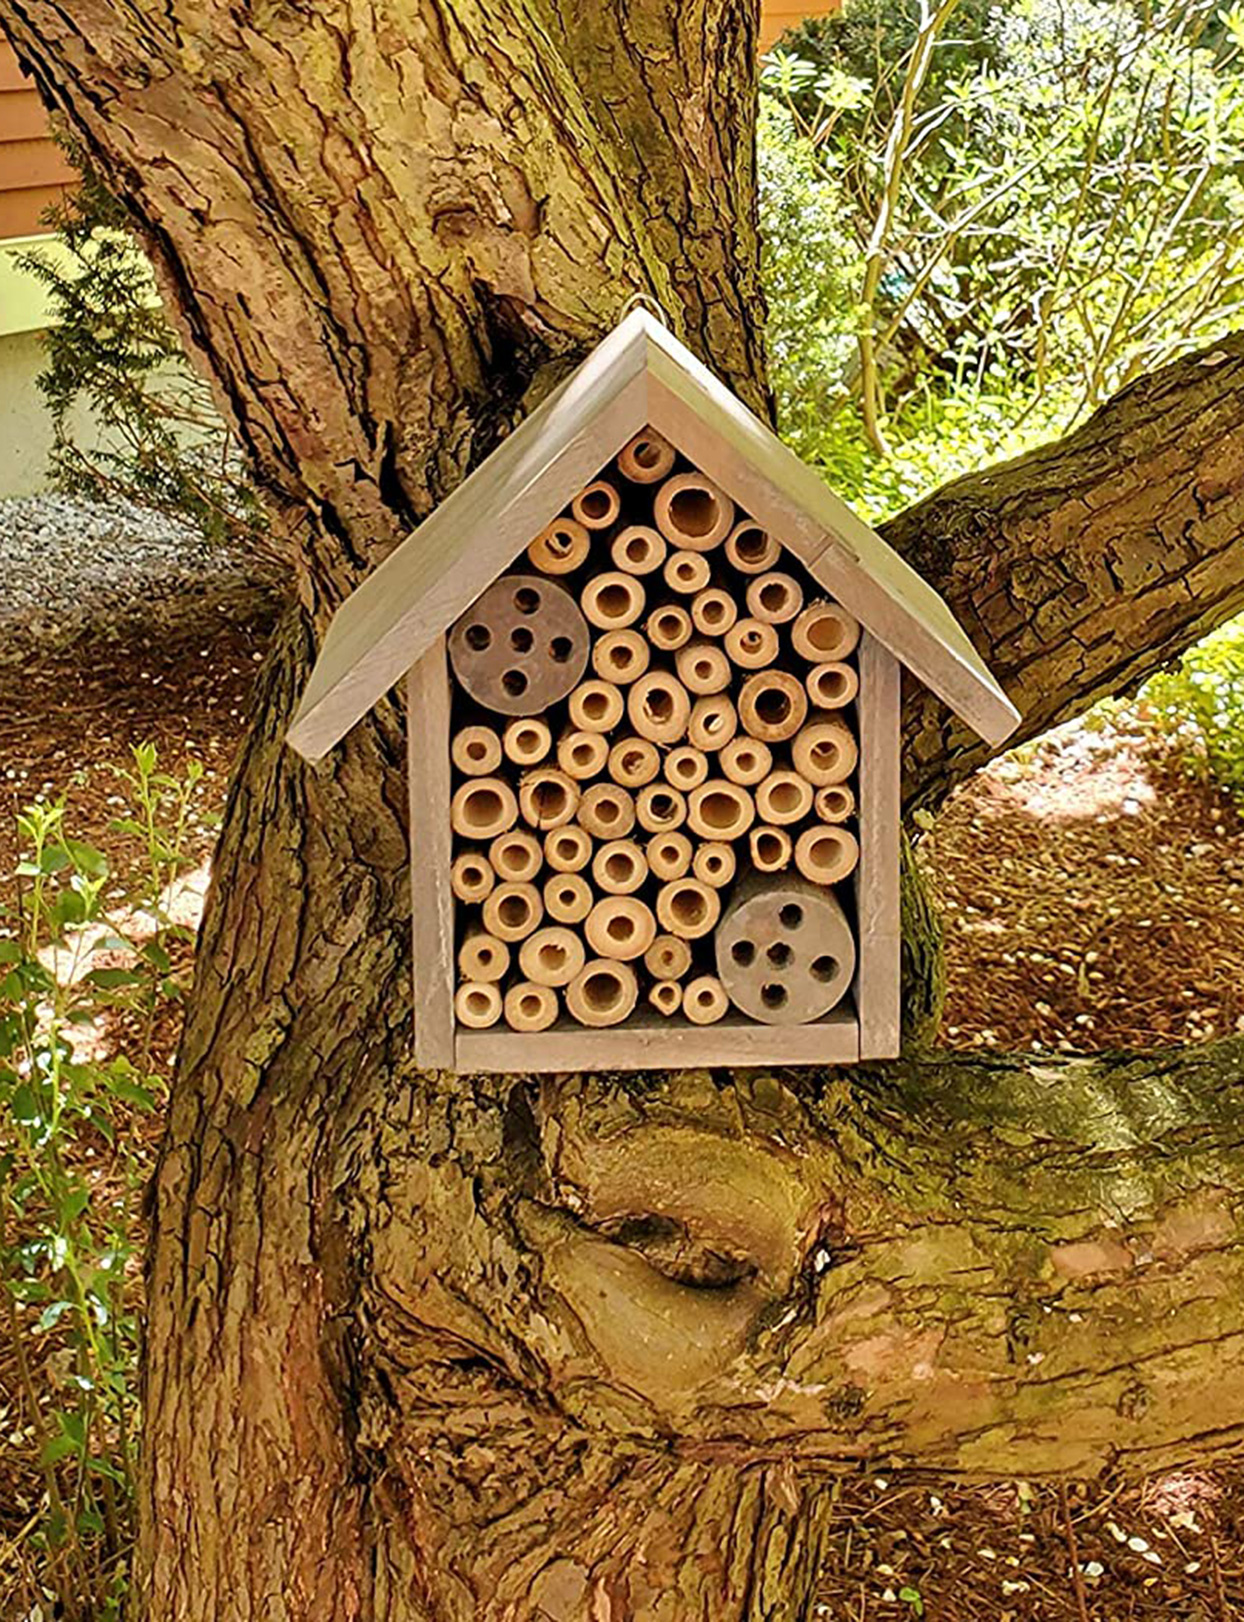 wood mason bee house with bamboo tubes in tree